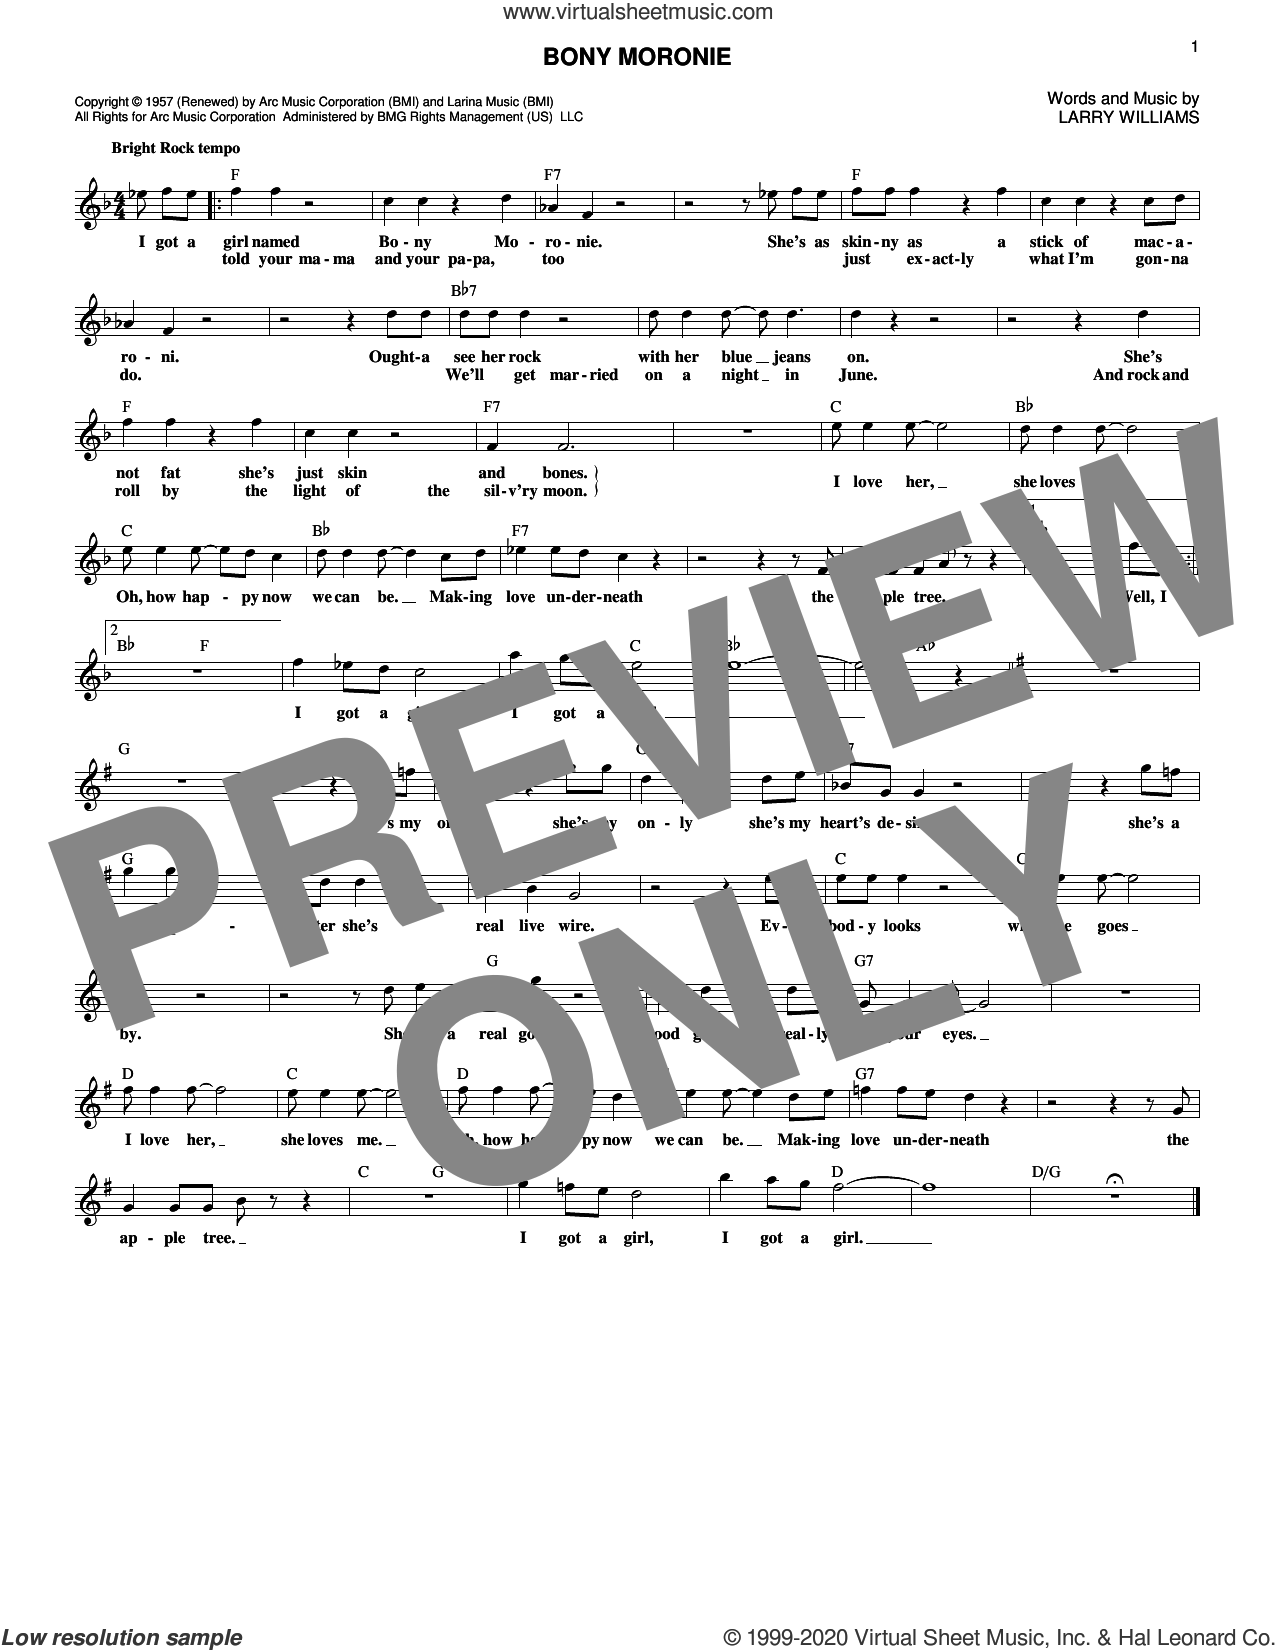 Bony Moronie sheet music for voice and other instruments (fake book) by Larry Williams, intermediate skill level